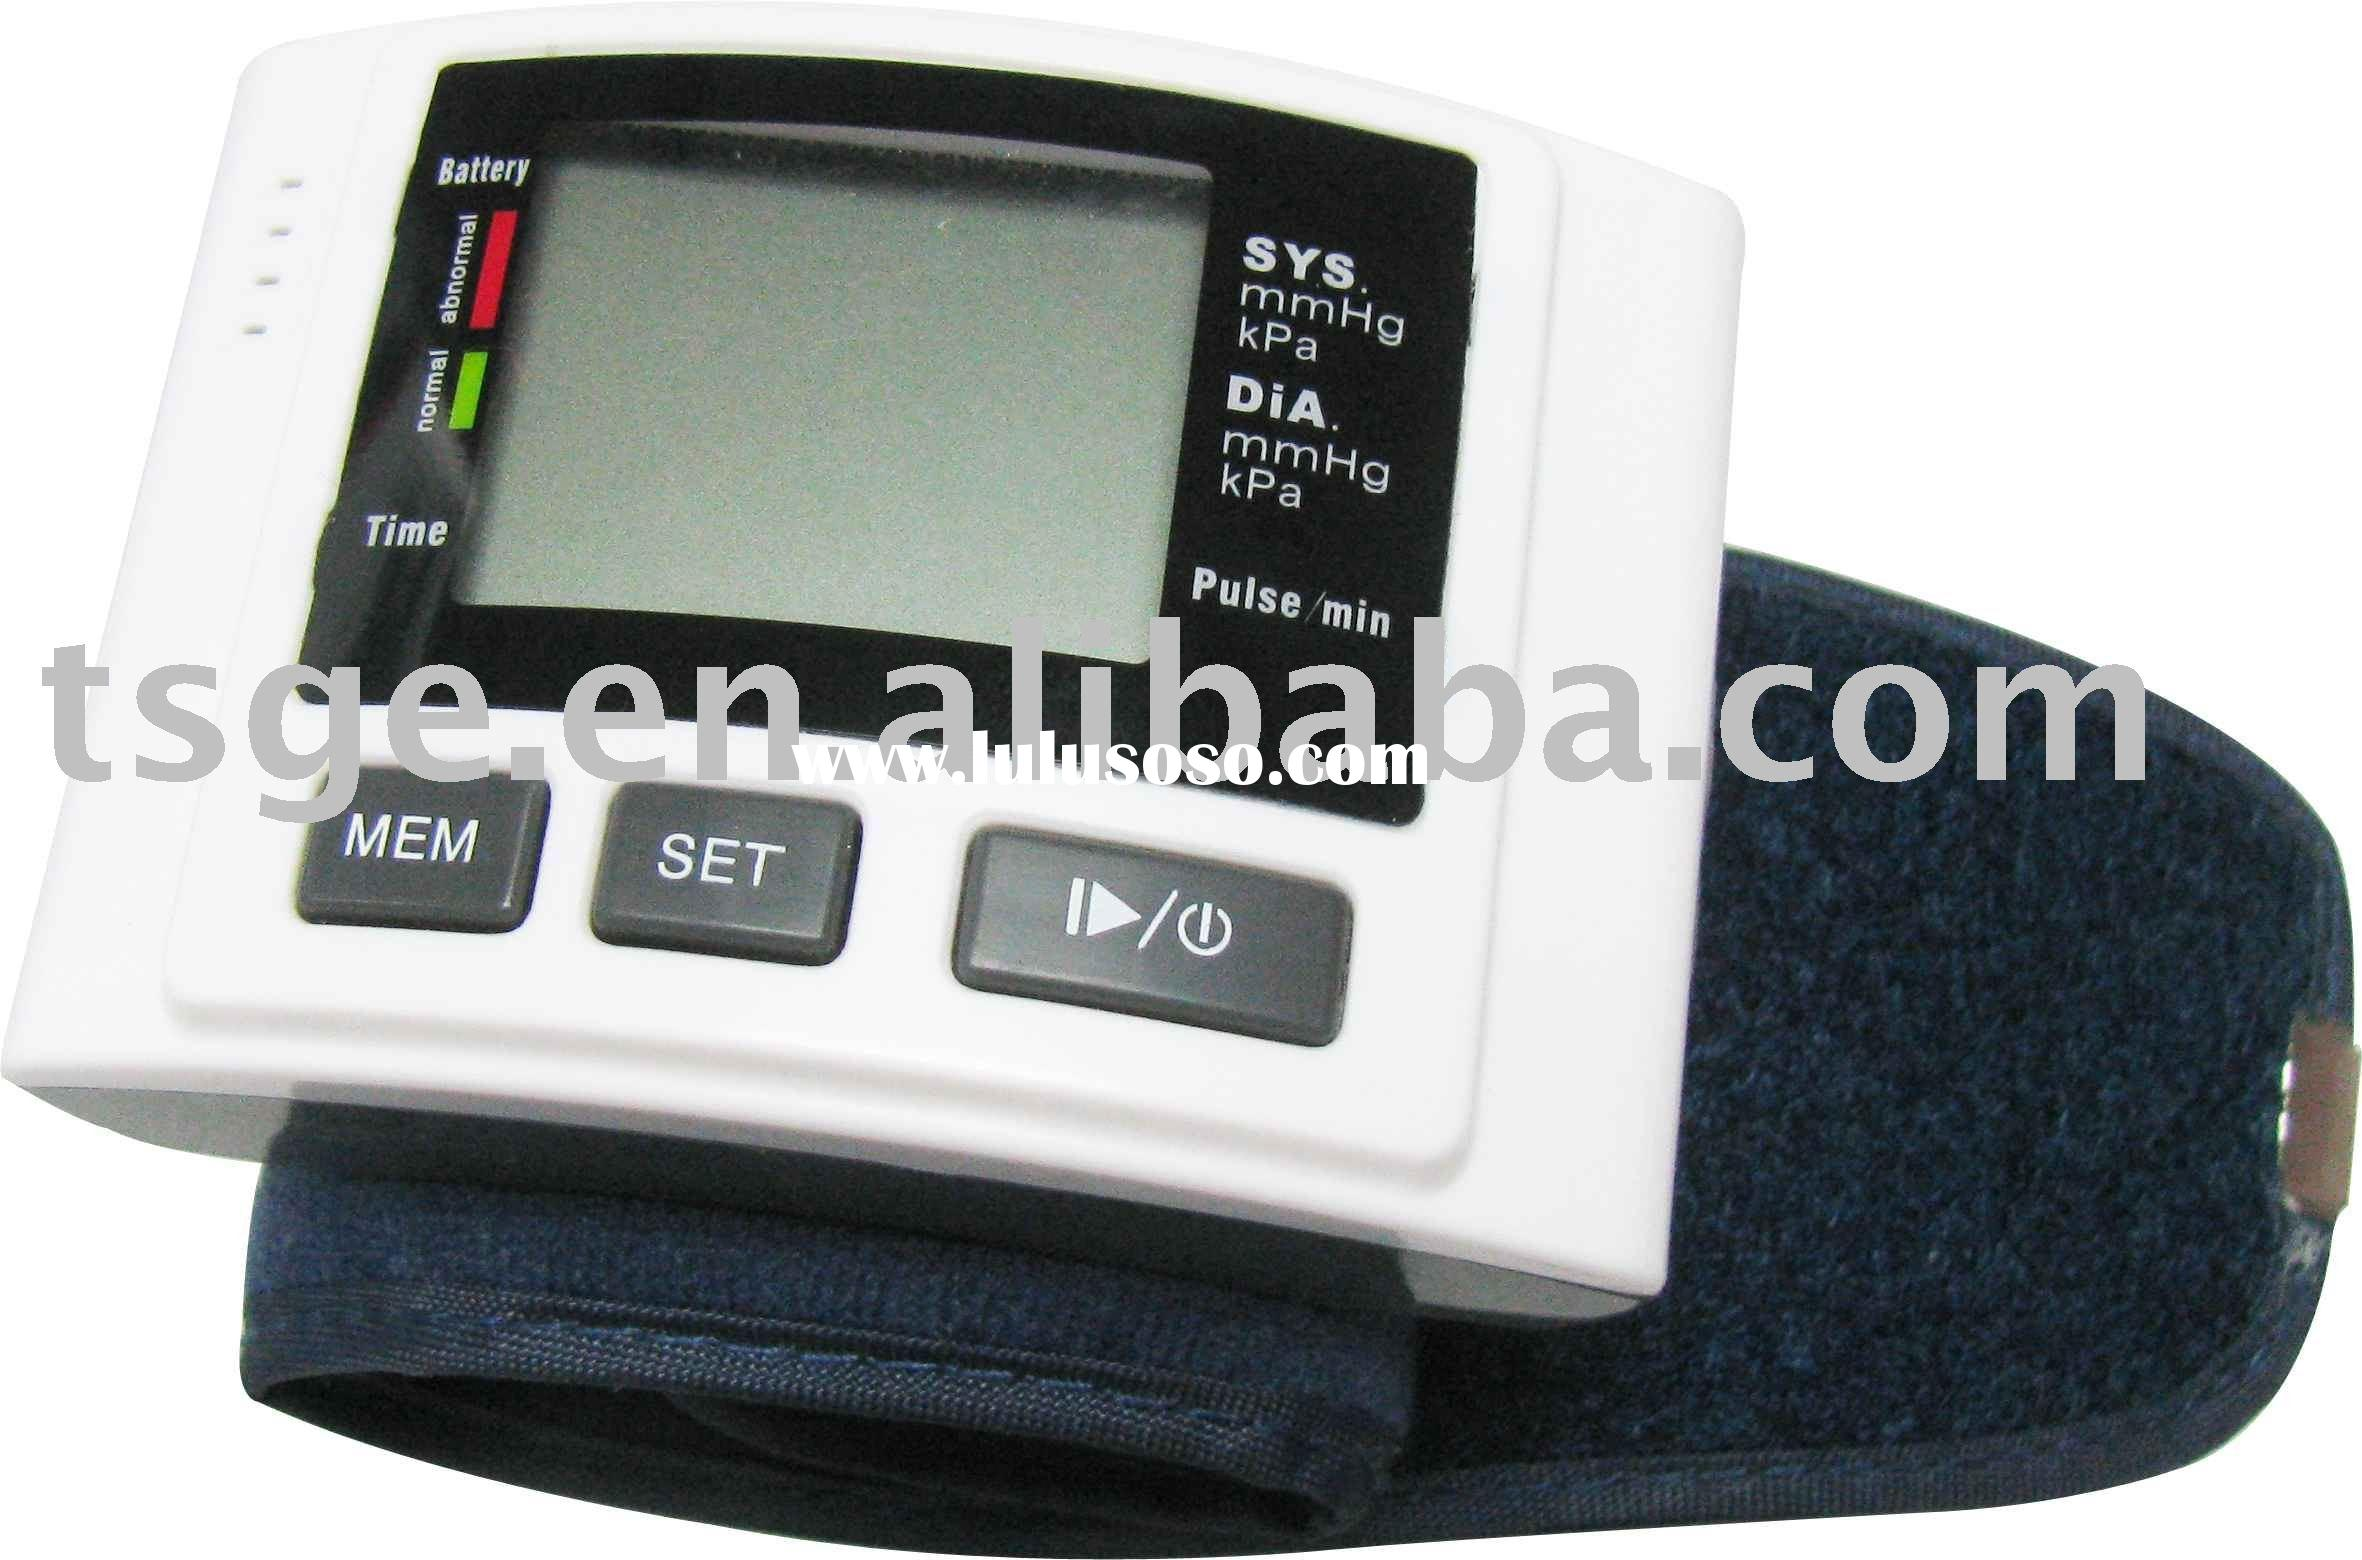 Wrist Blood Pressure Monitor TSGE-01